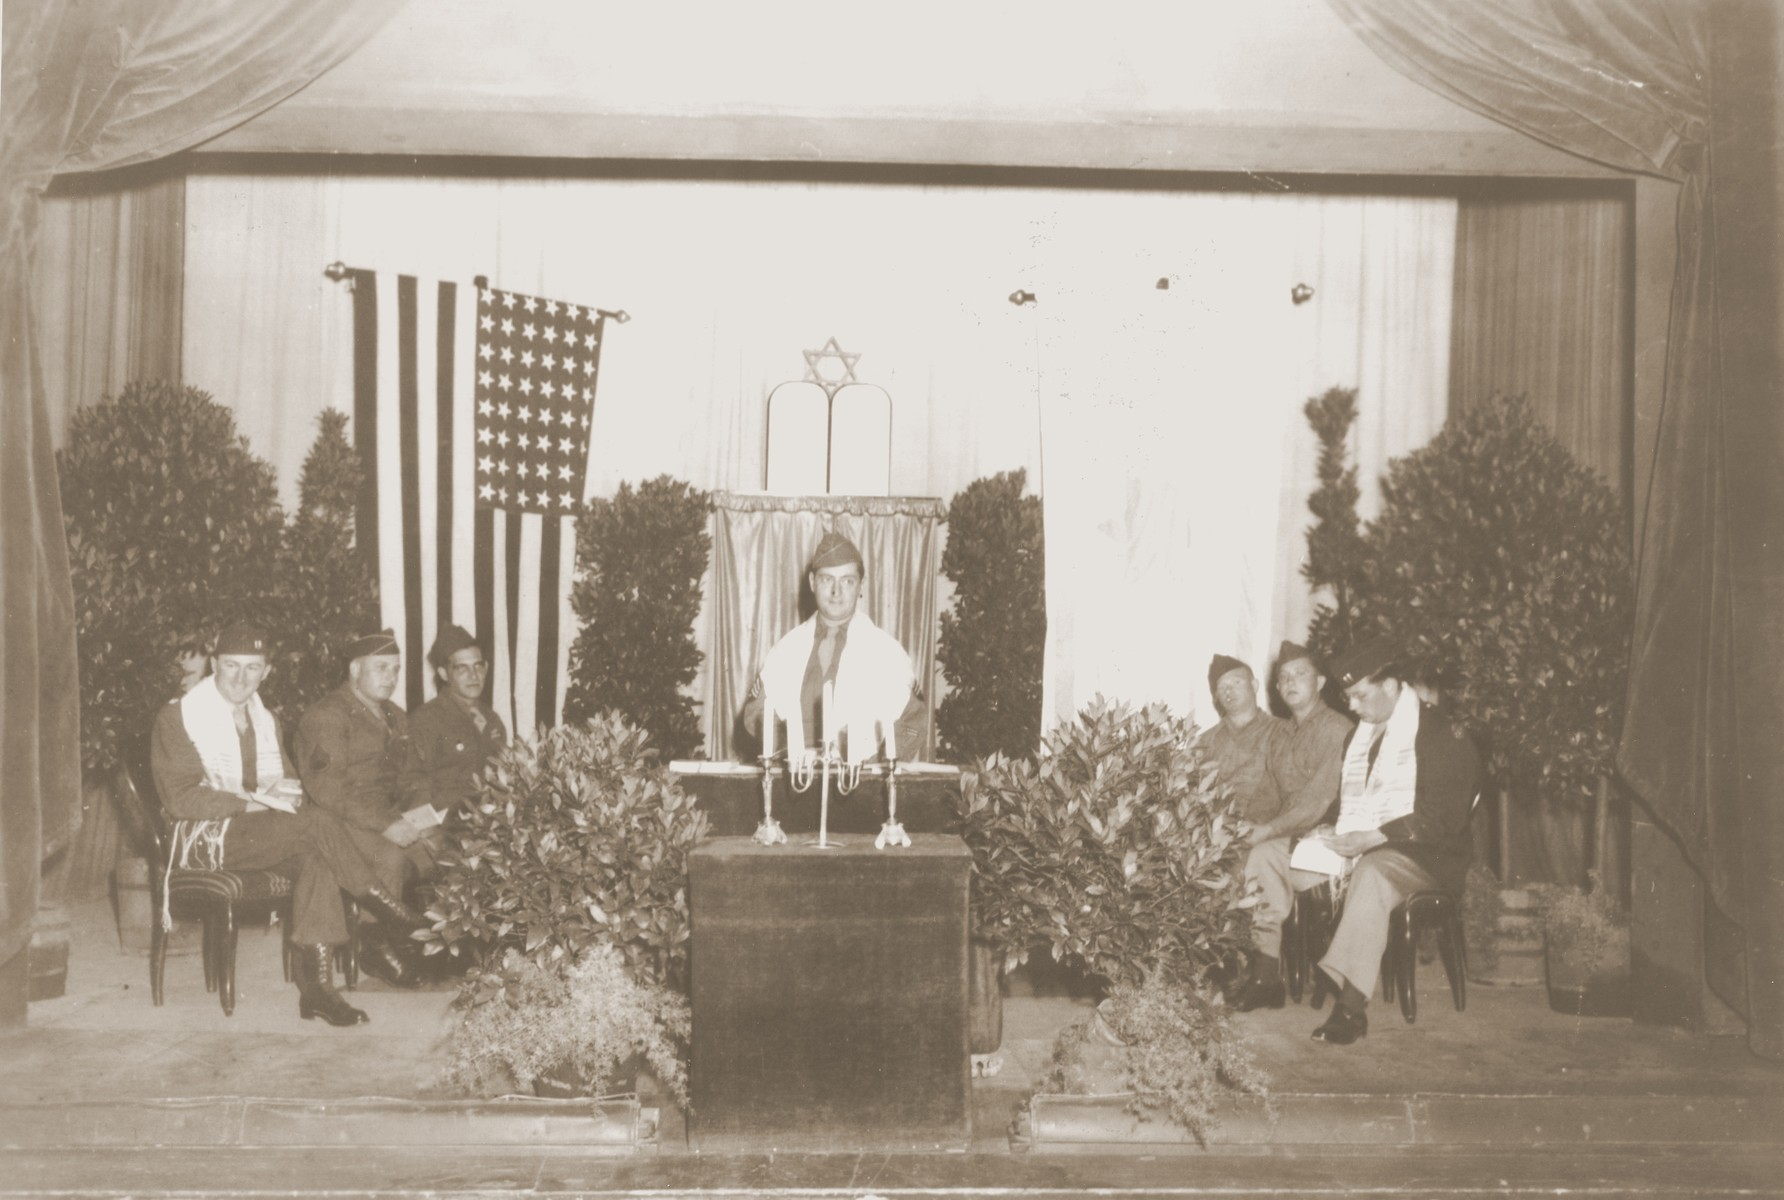 American Jewish soldiers conduct religious services in Germany.